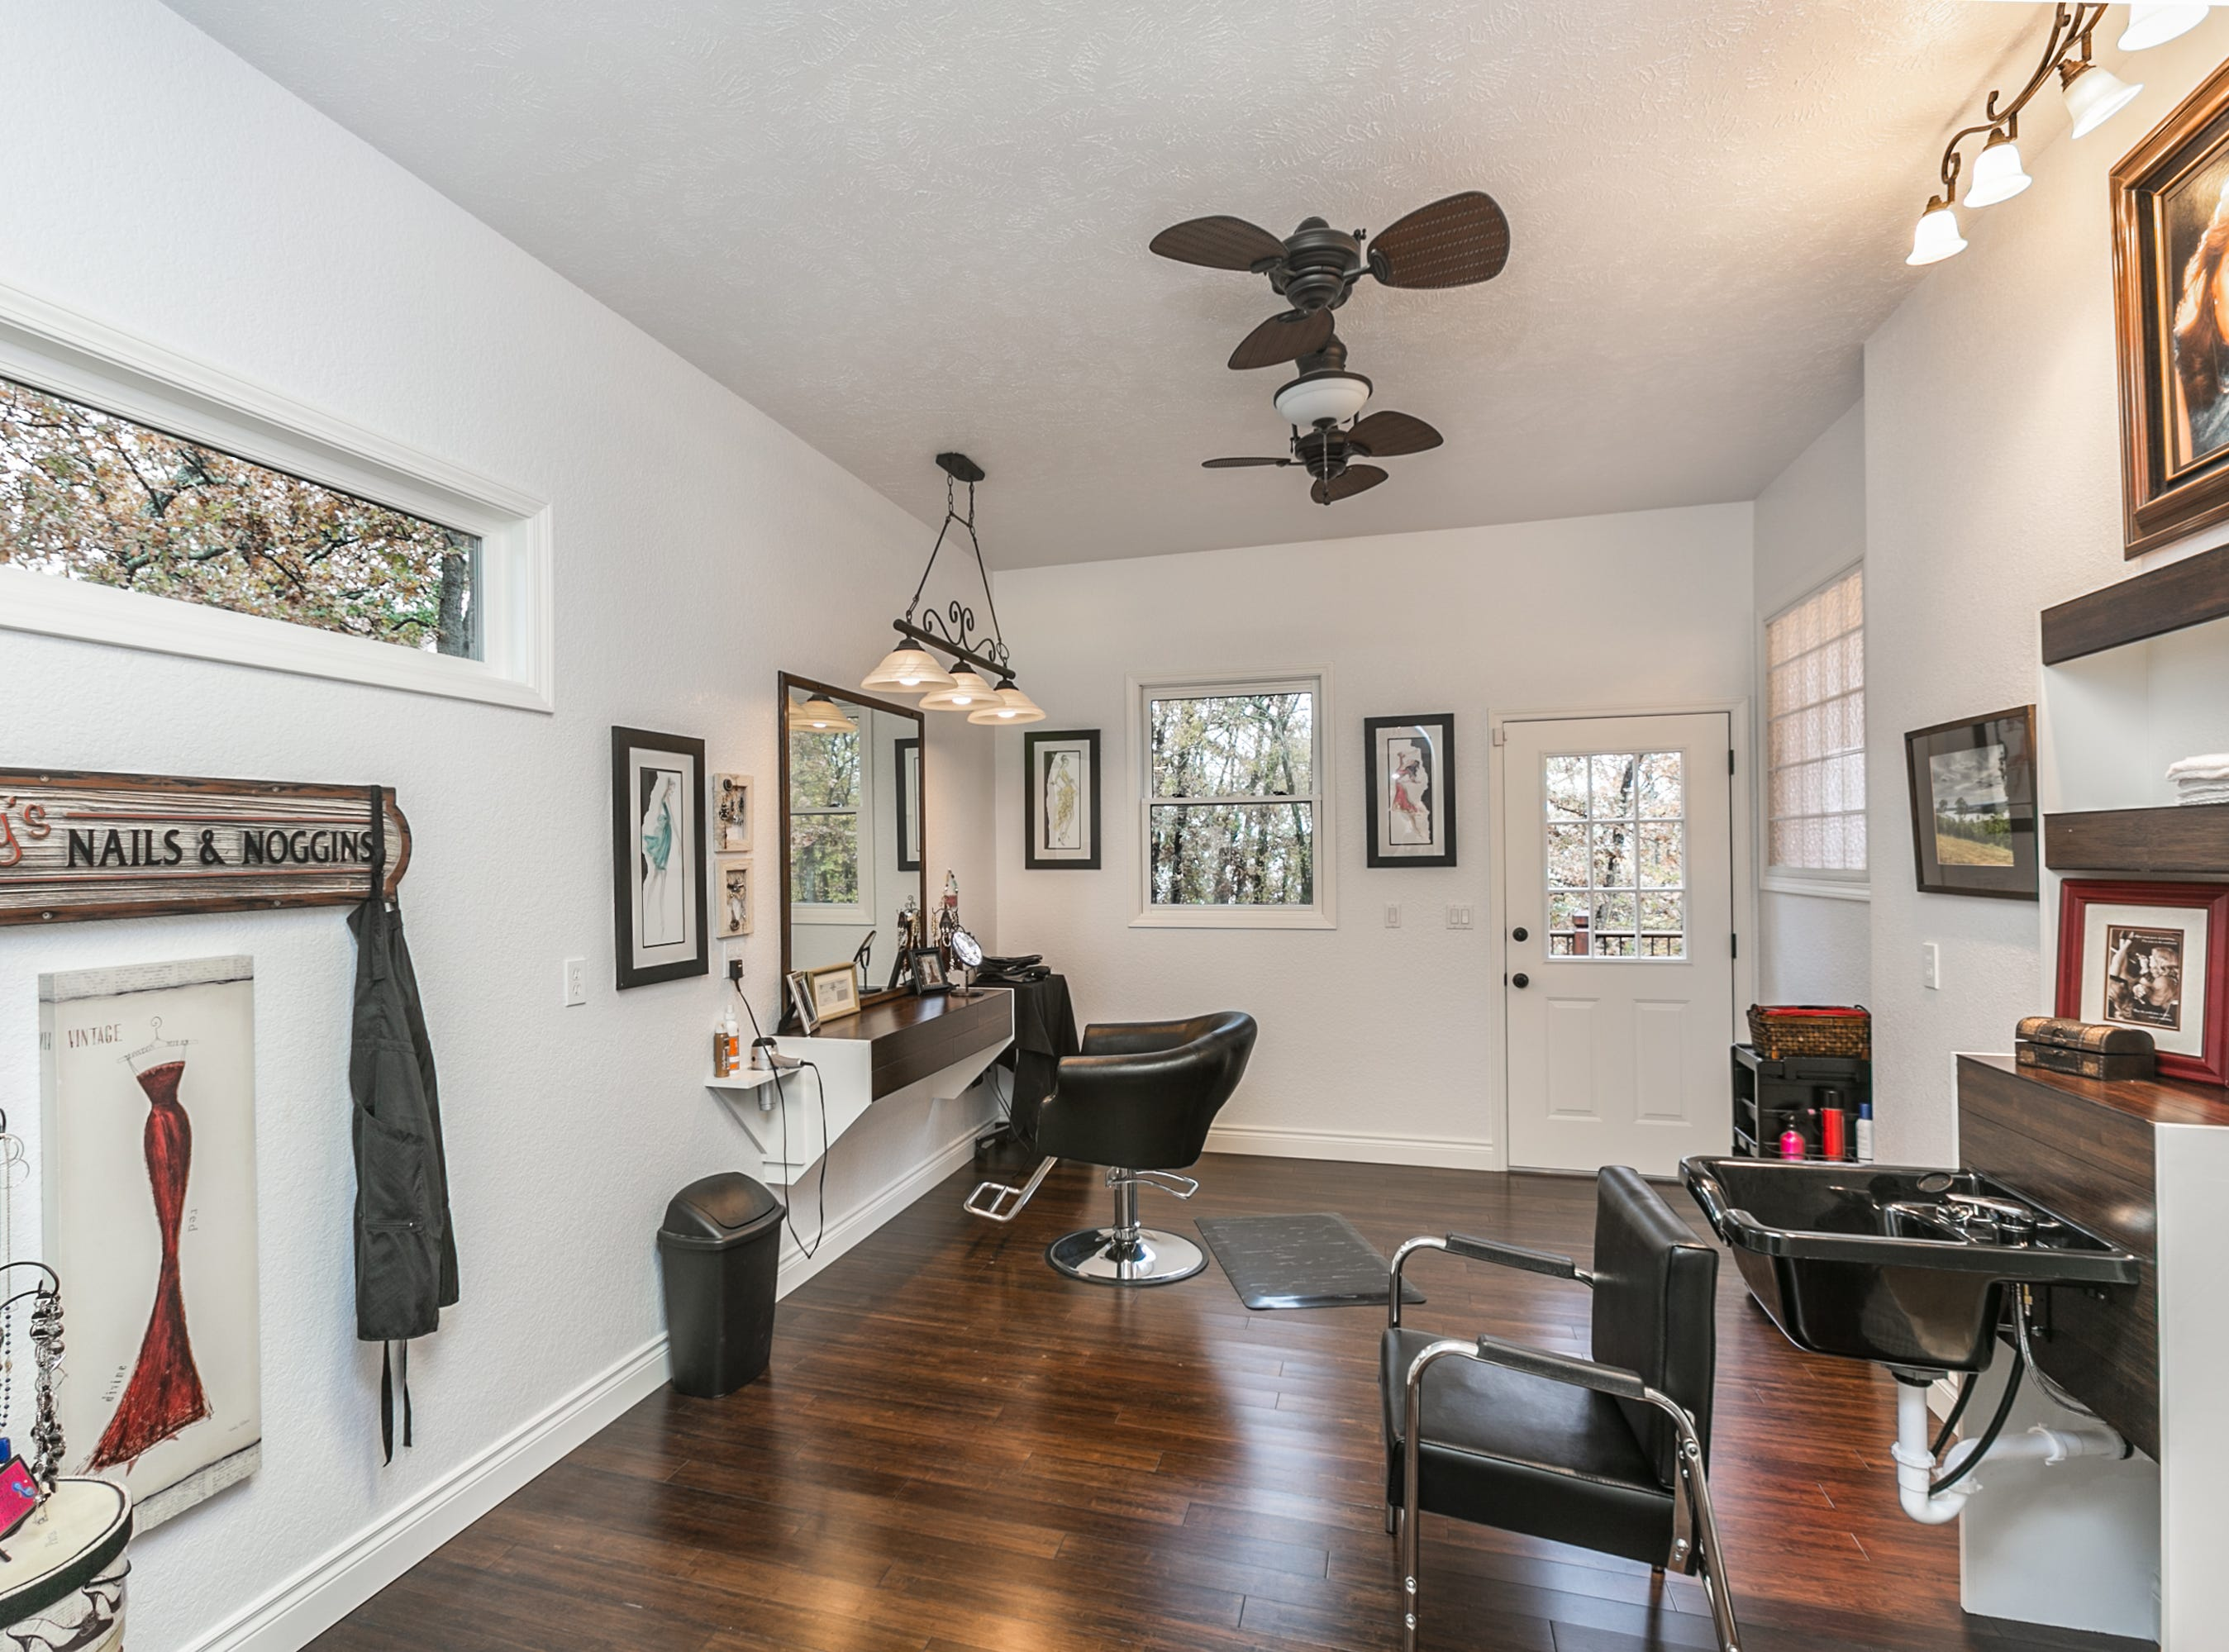 Cindy says this is where the beauty happens. The salon is accessible through the master closet or via an exterior door on the back of the house.